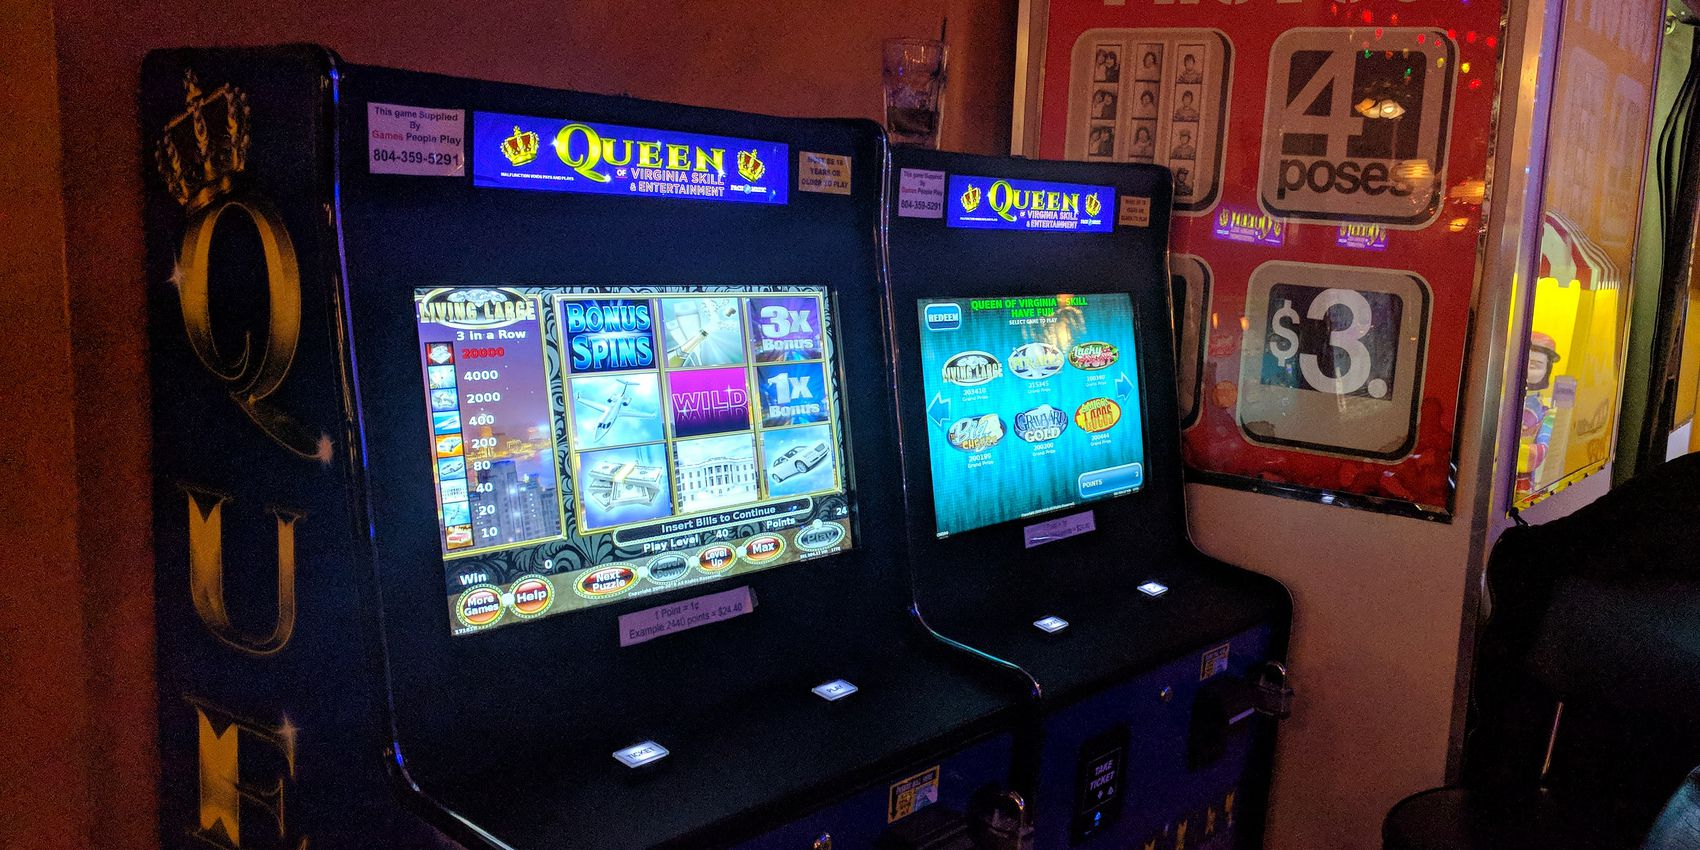 Skill-based slot machines put a touch of Las Vegas at the local bar